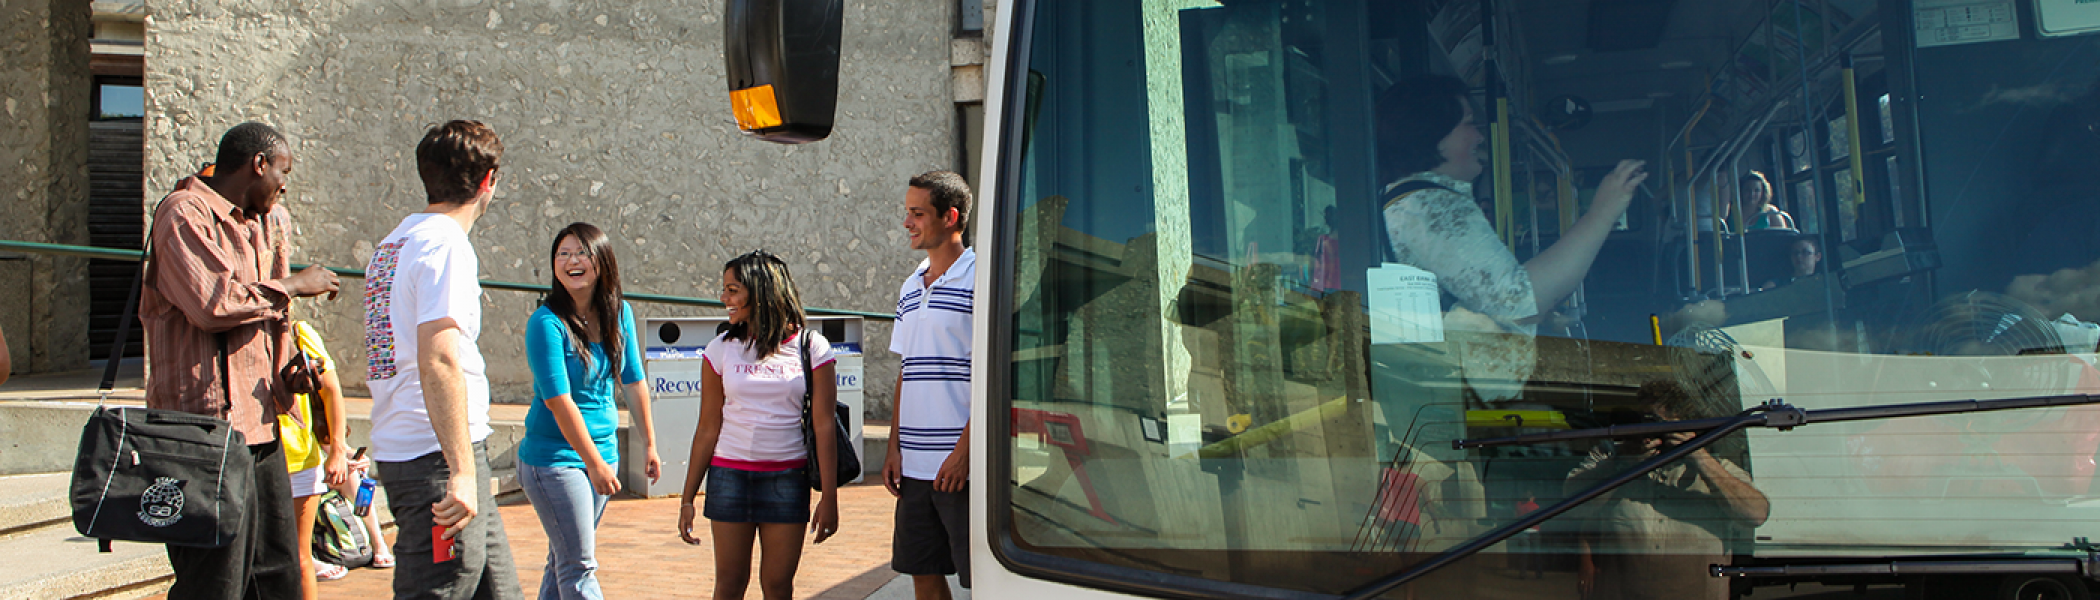 A group of 4 students about to board the bus outside of the Bata library on a sunny summer's afternoon